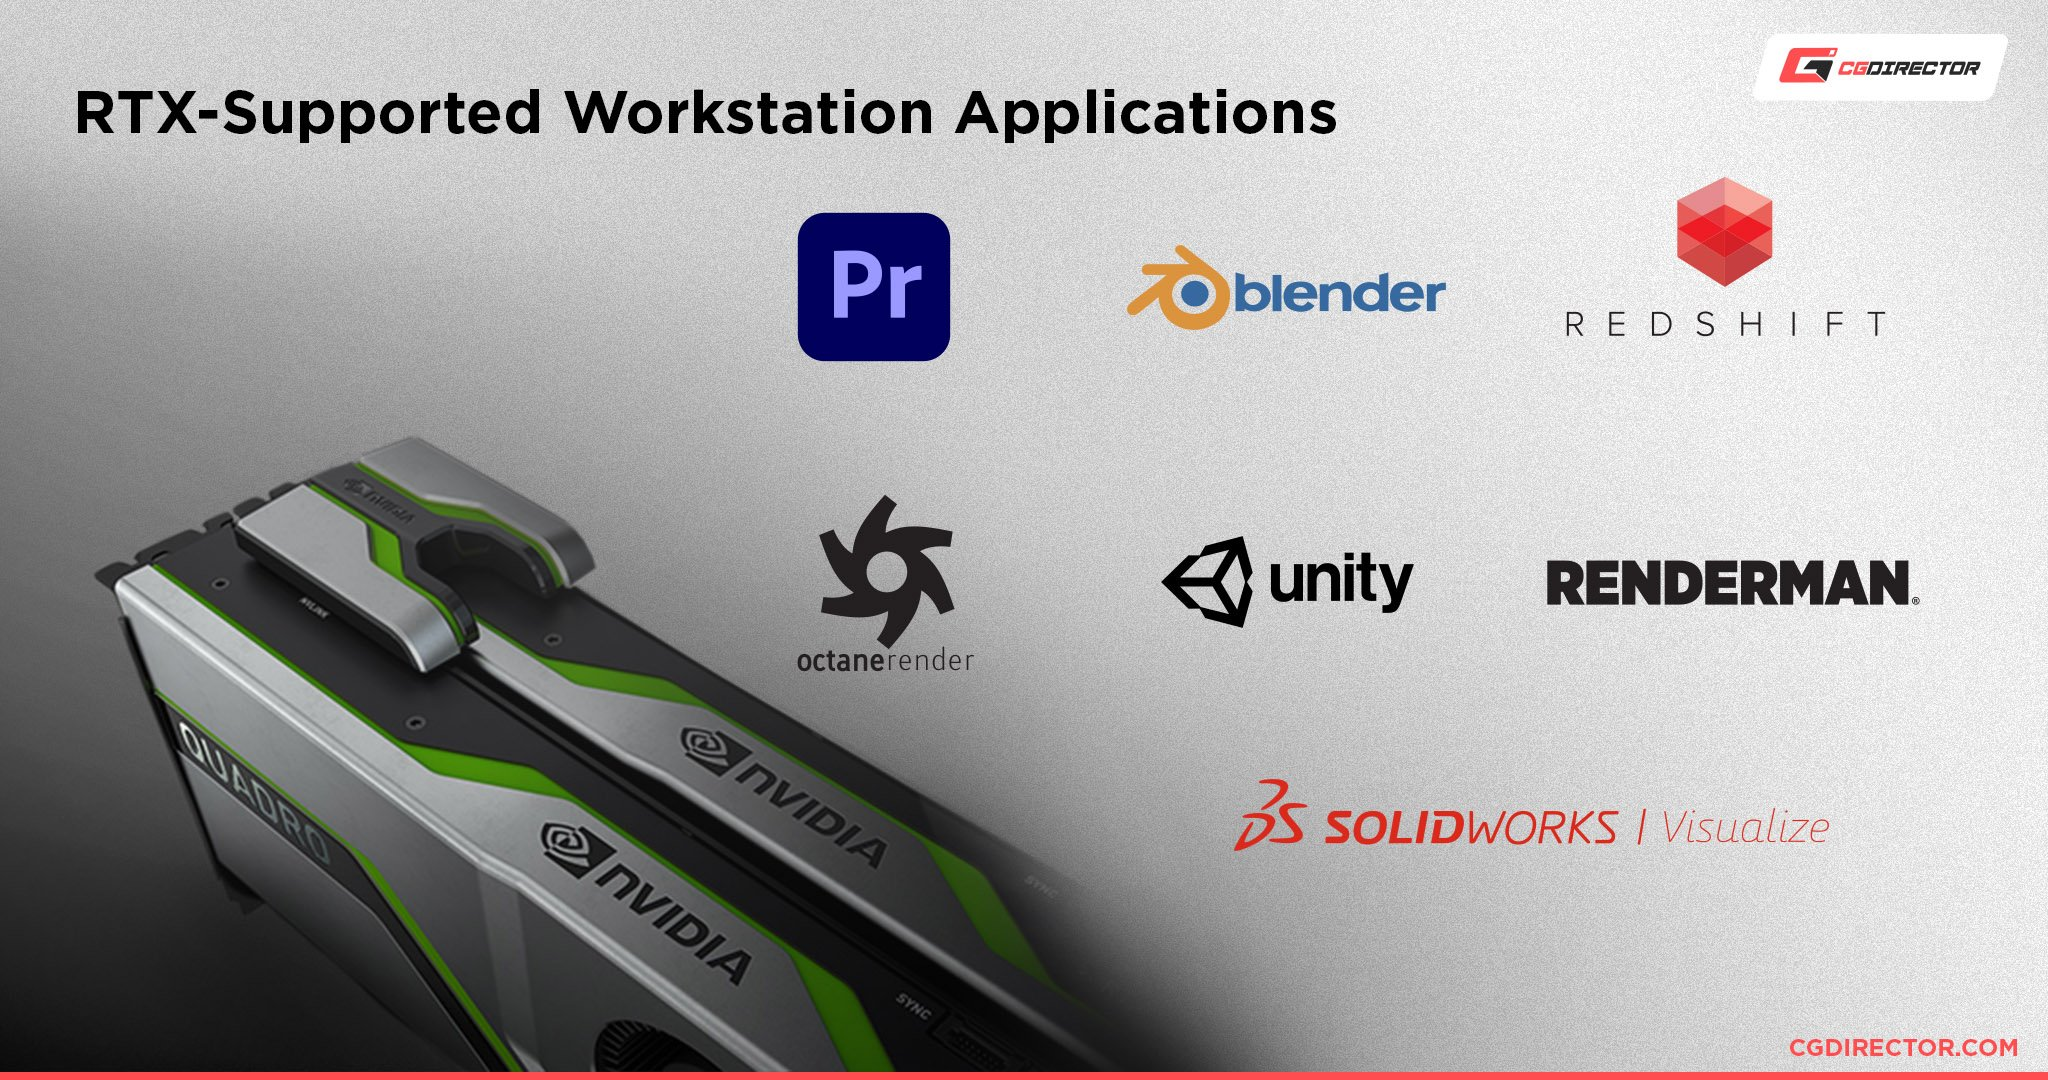 RTX-Technology Enabled Workstation Applications